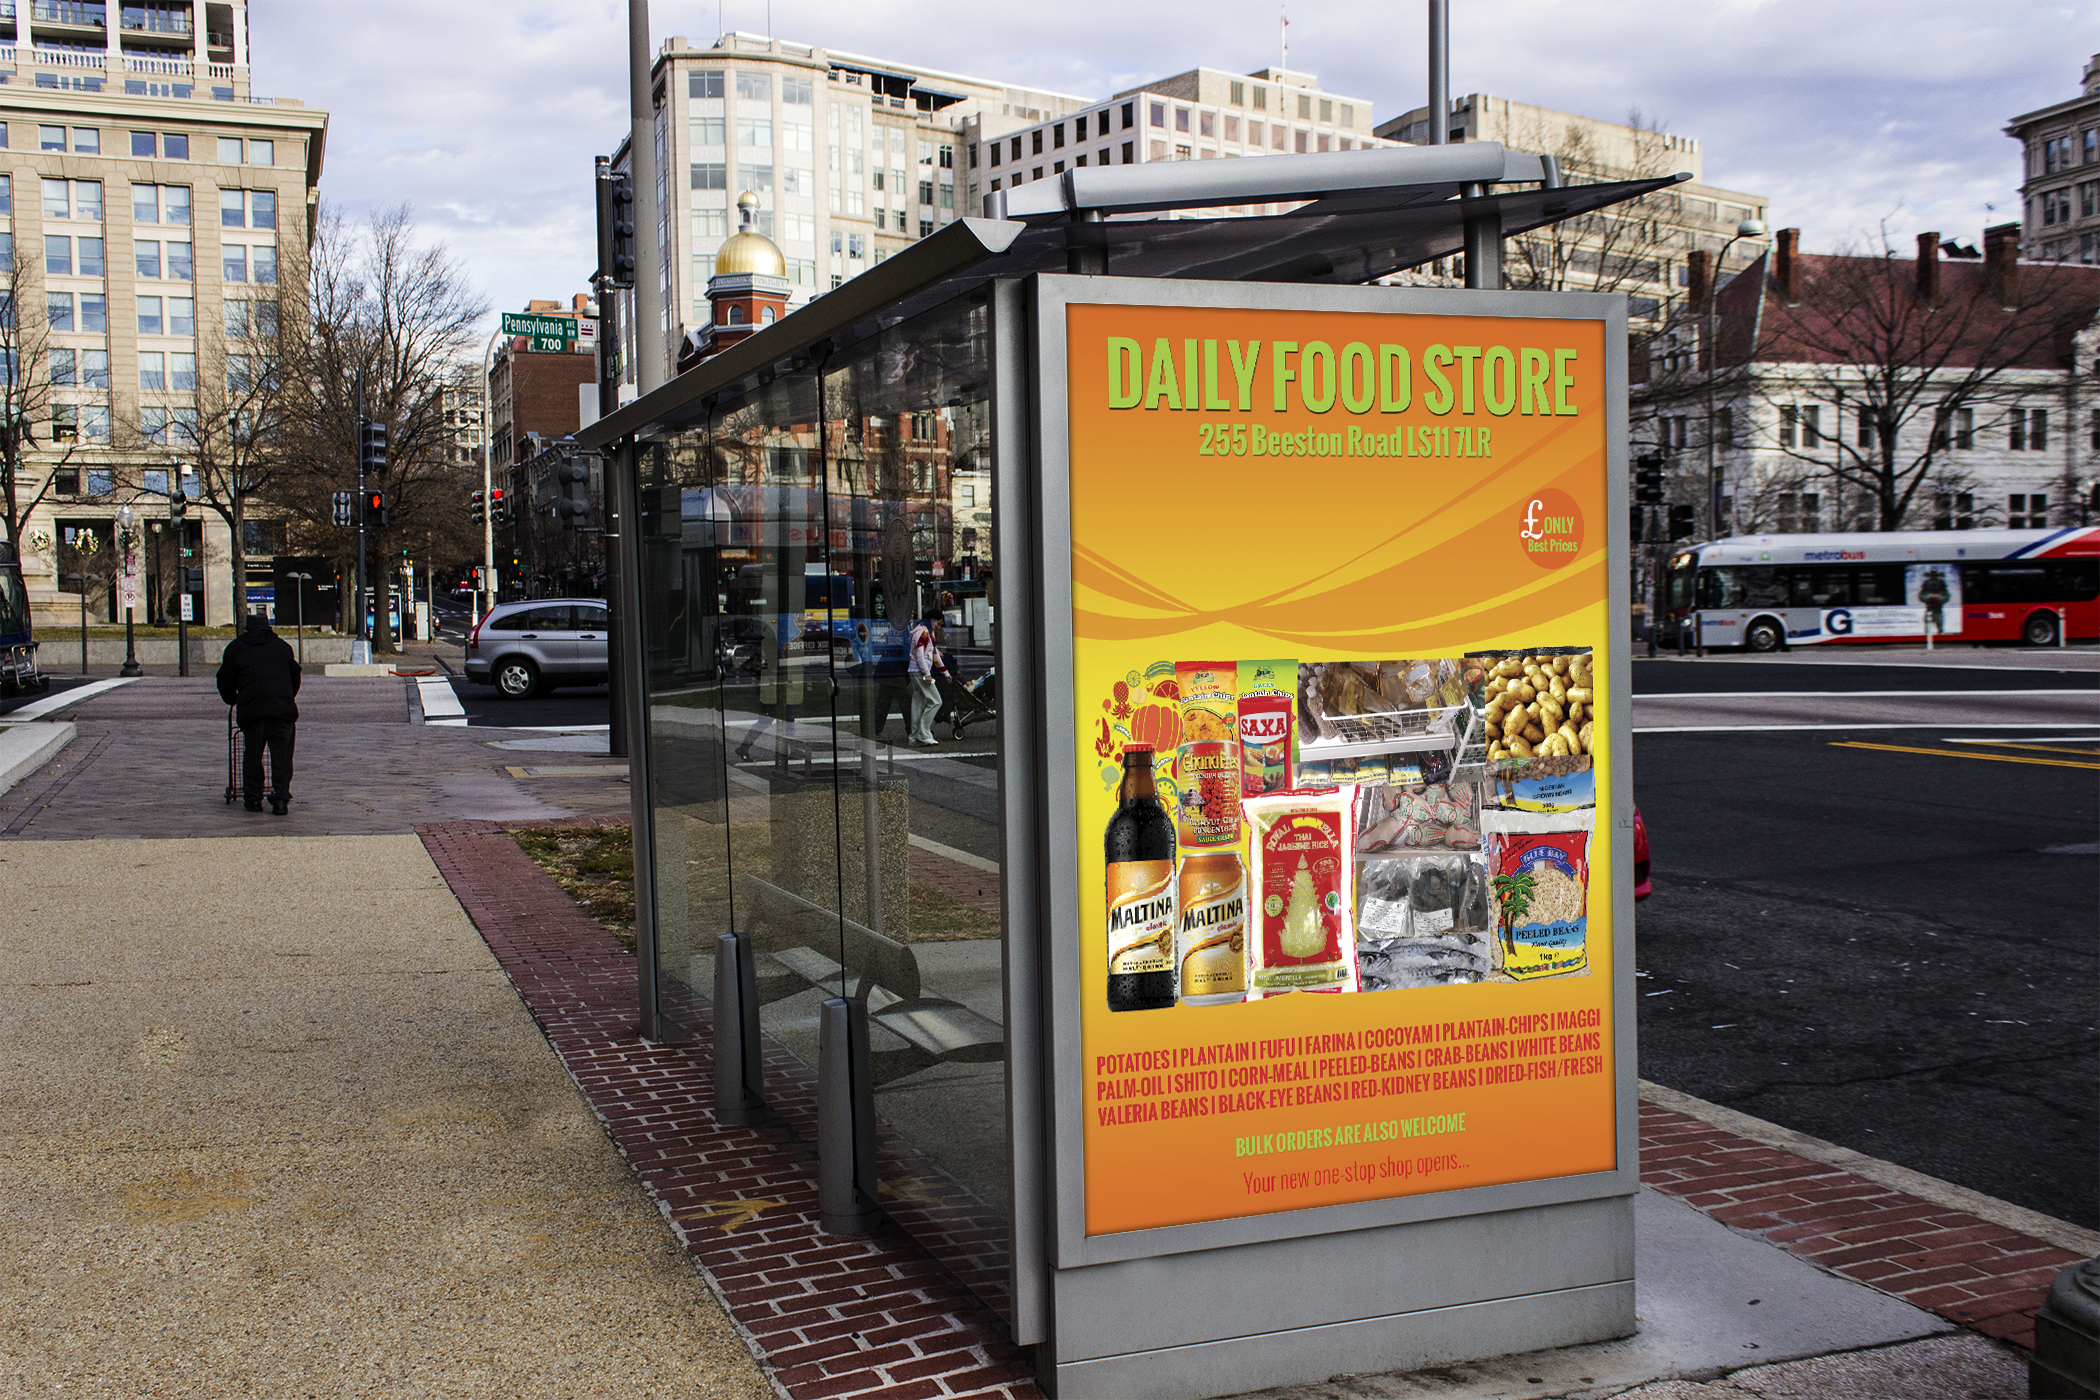 Bus Stop Ad - Daily Food Store